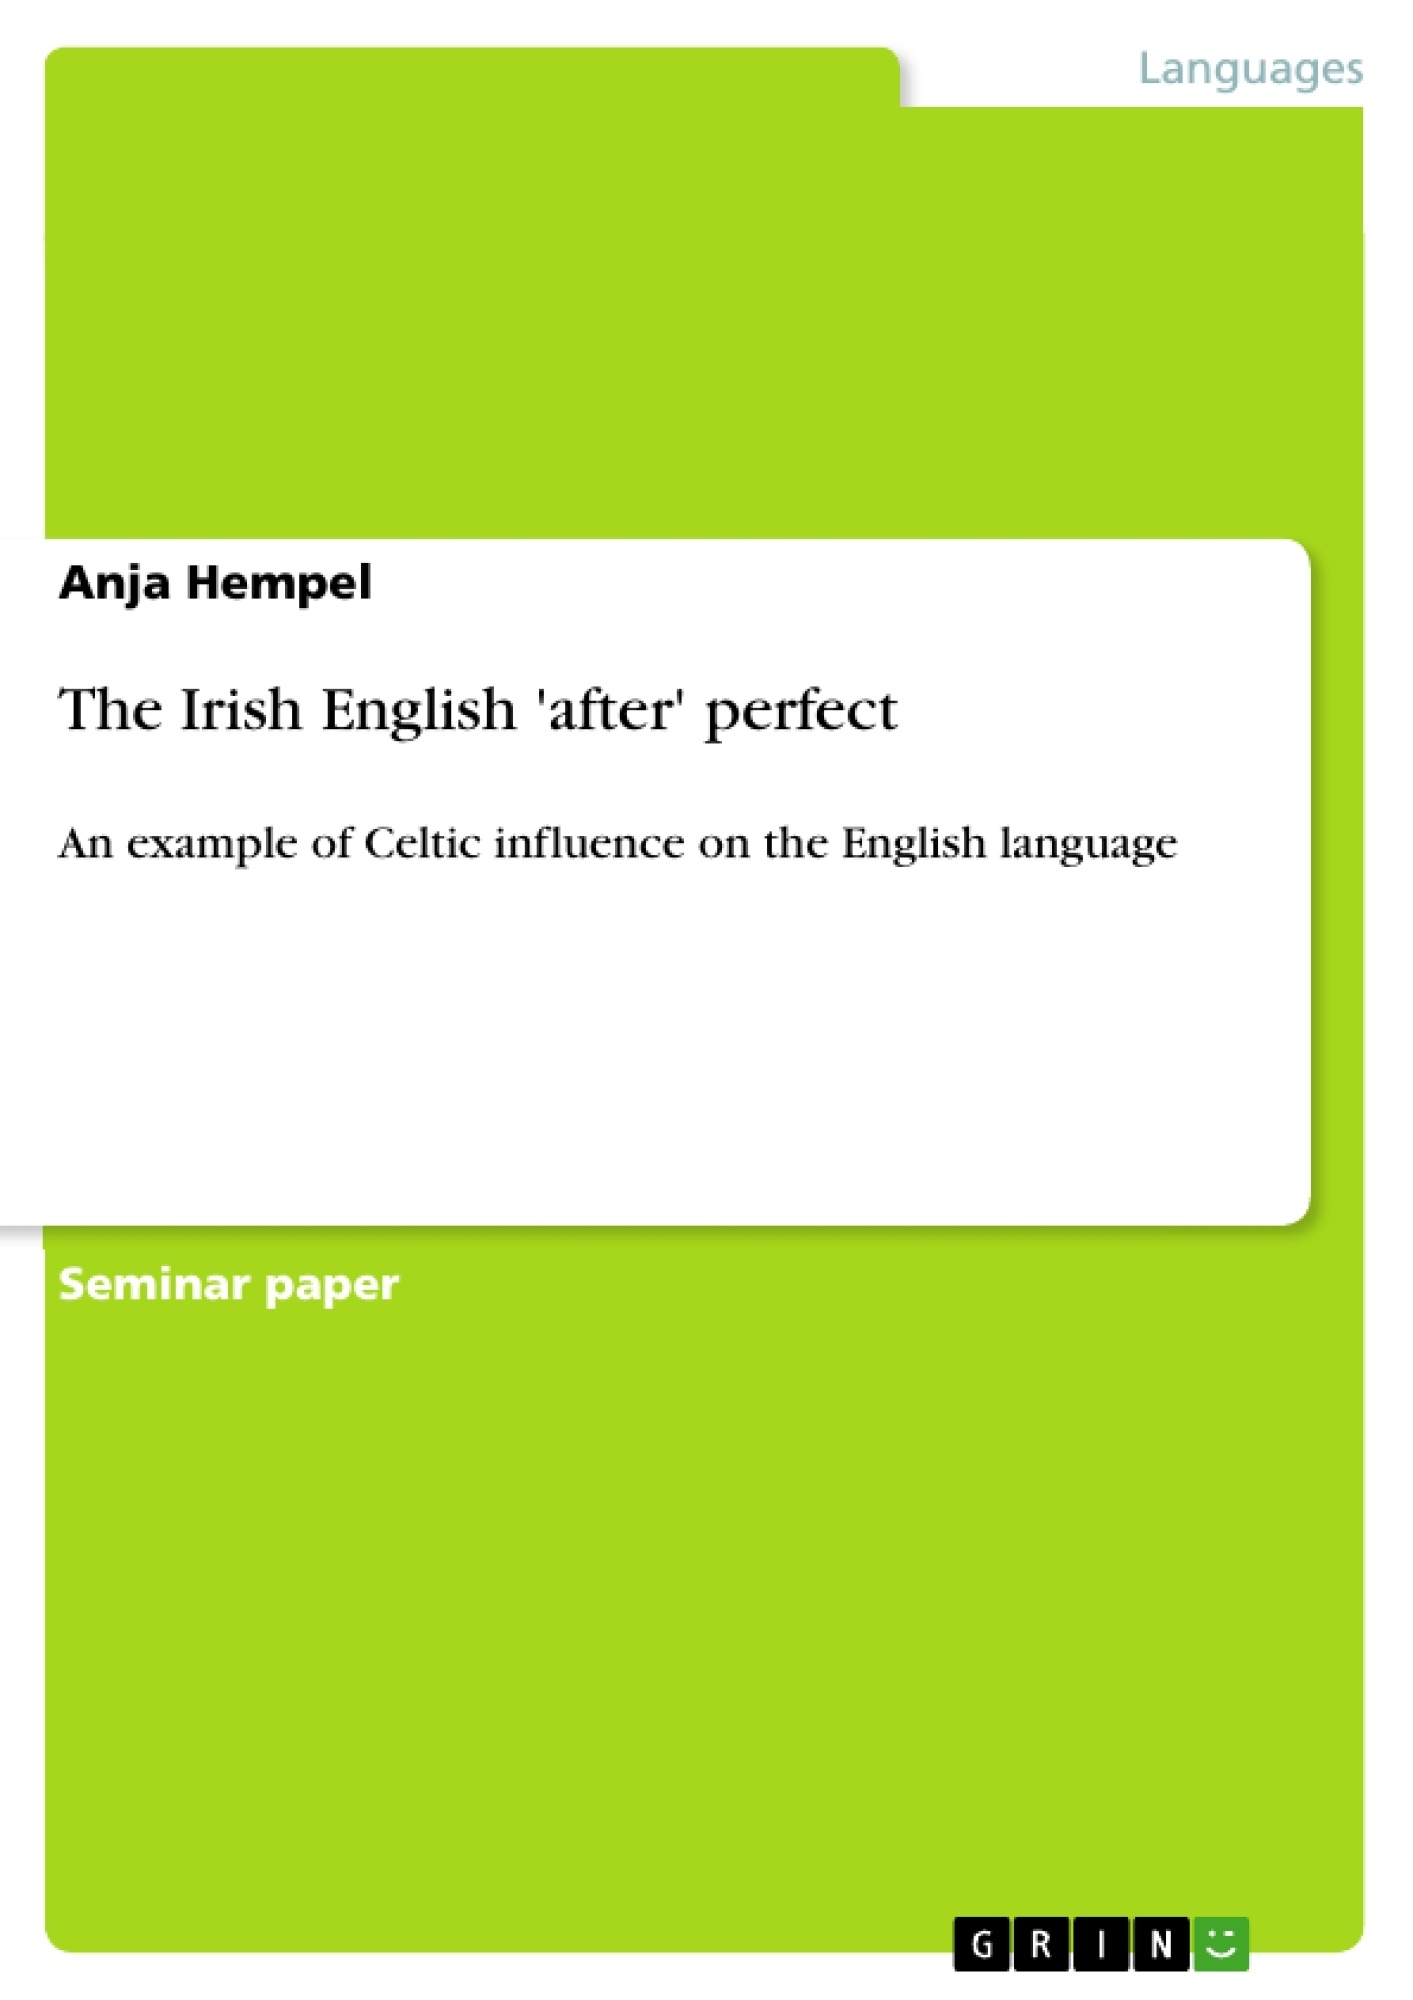 Title: The Irish English 'after' perfect